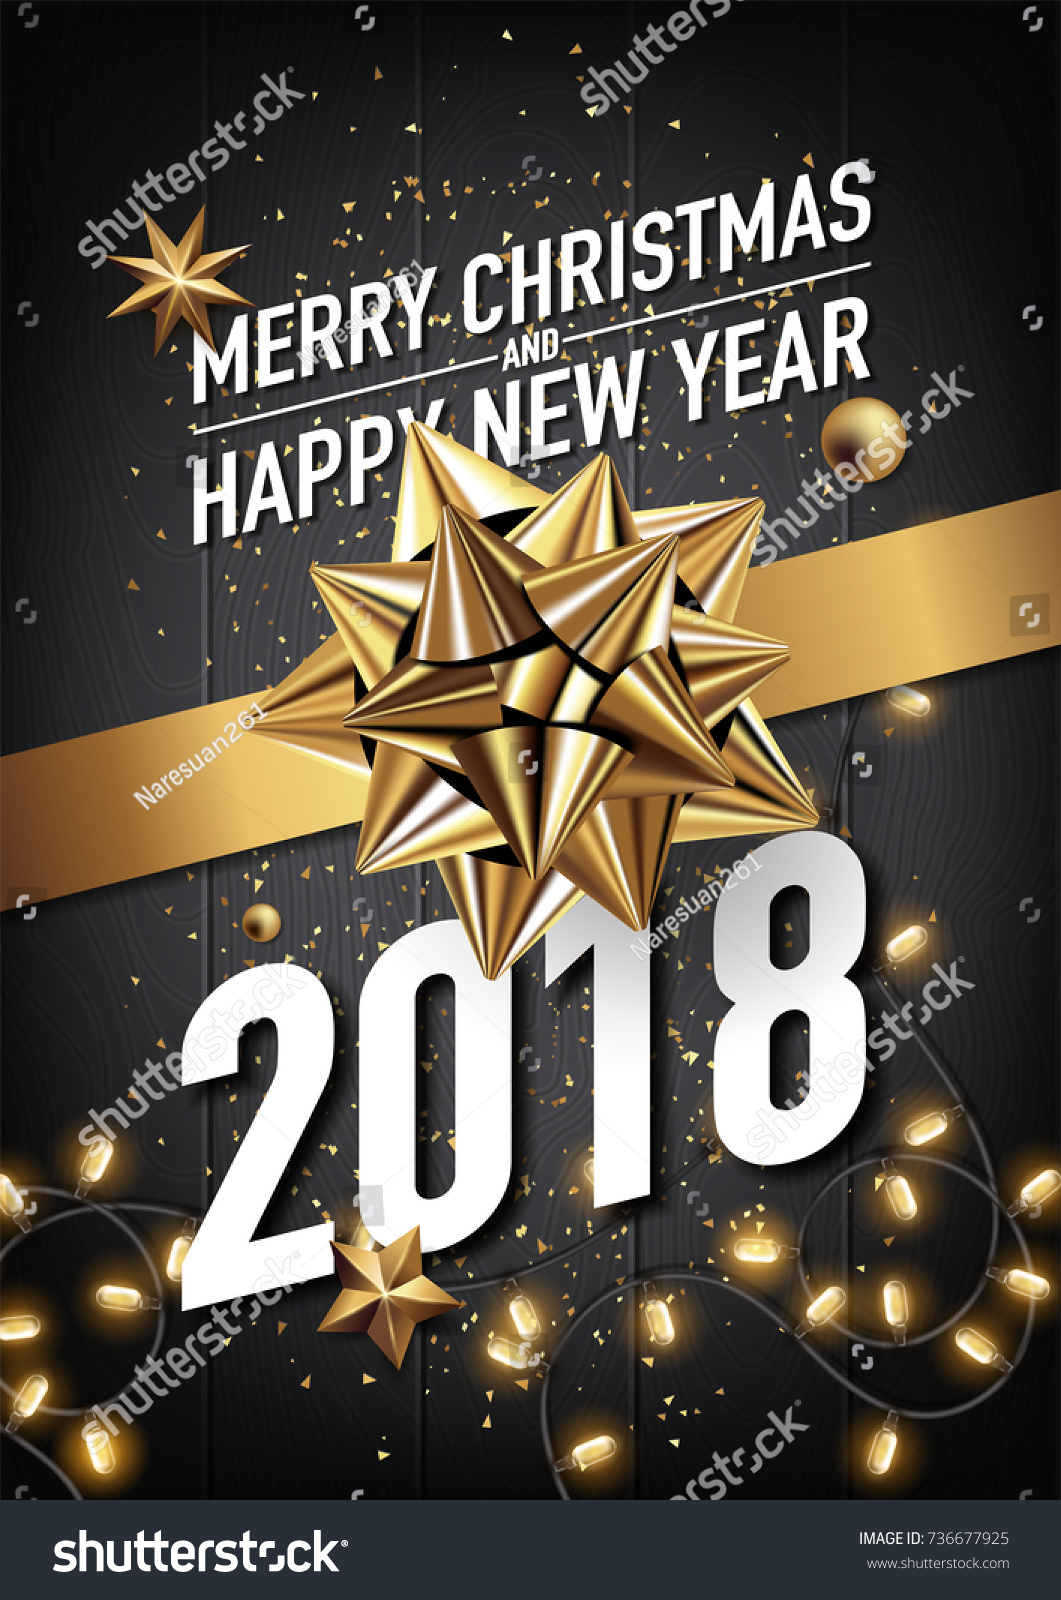 Merry Christmas Poster 2018.2018 Happy New Year Merry Christmas Stock Vector Royalty